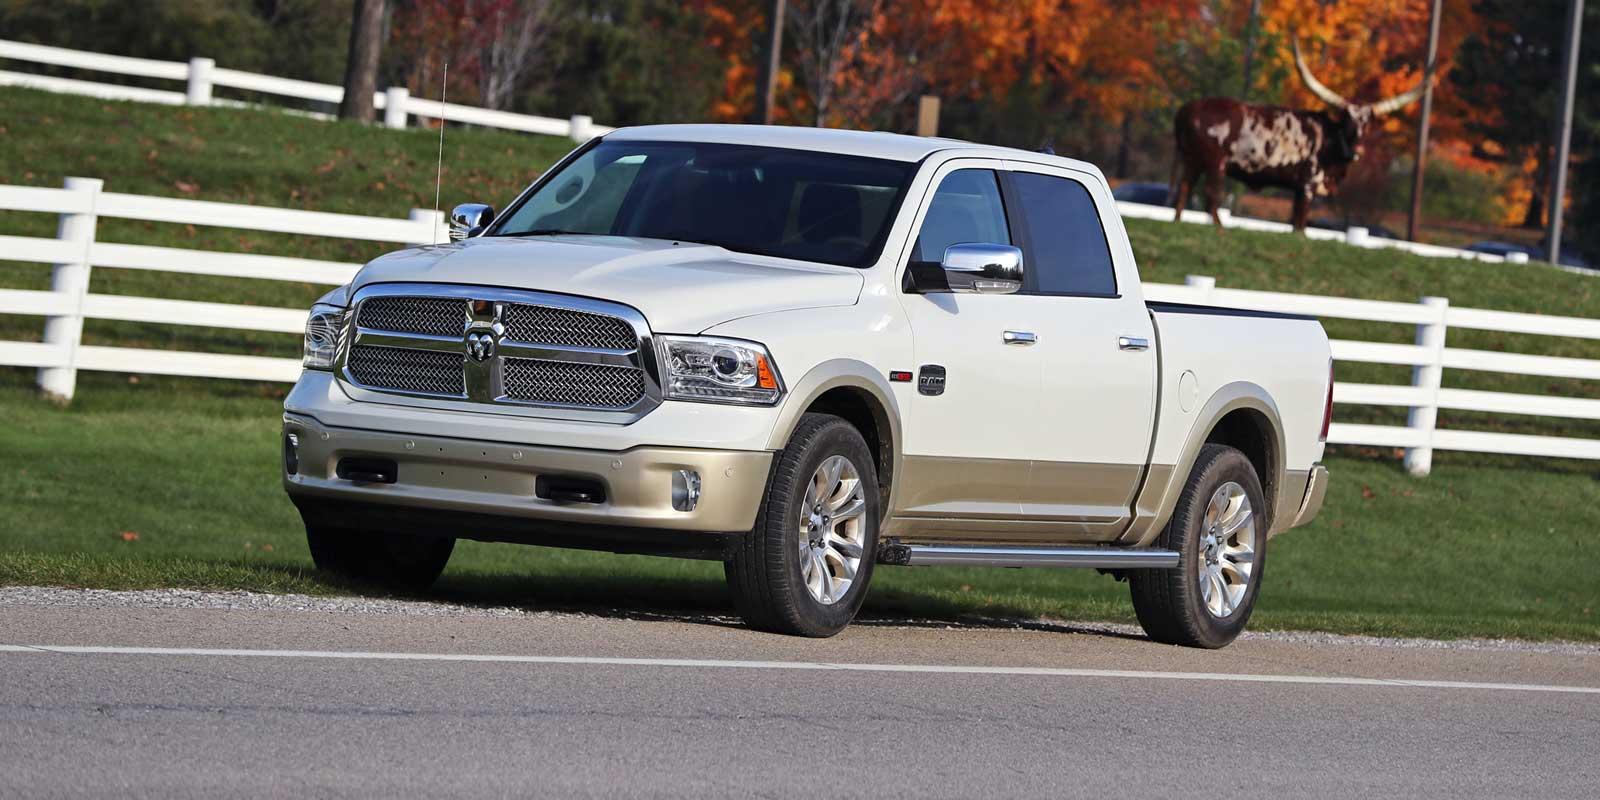 Dodge Ram 1500 Shock Buying Guide – Shock Surplus